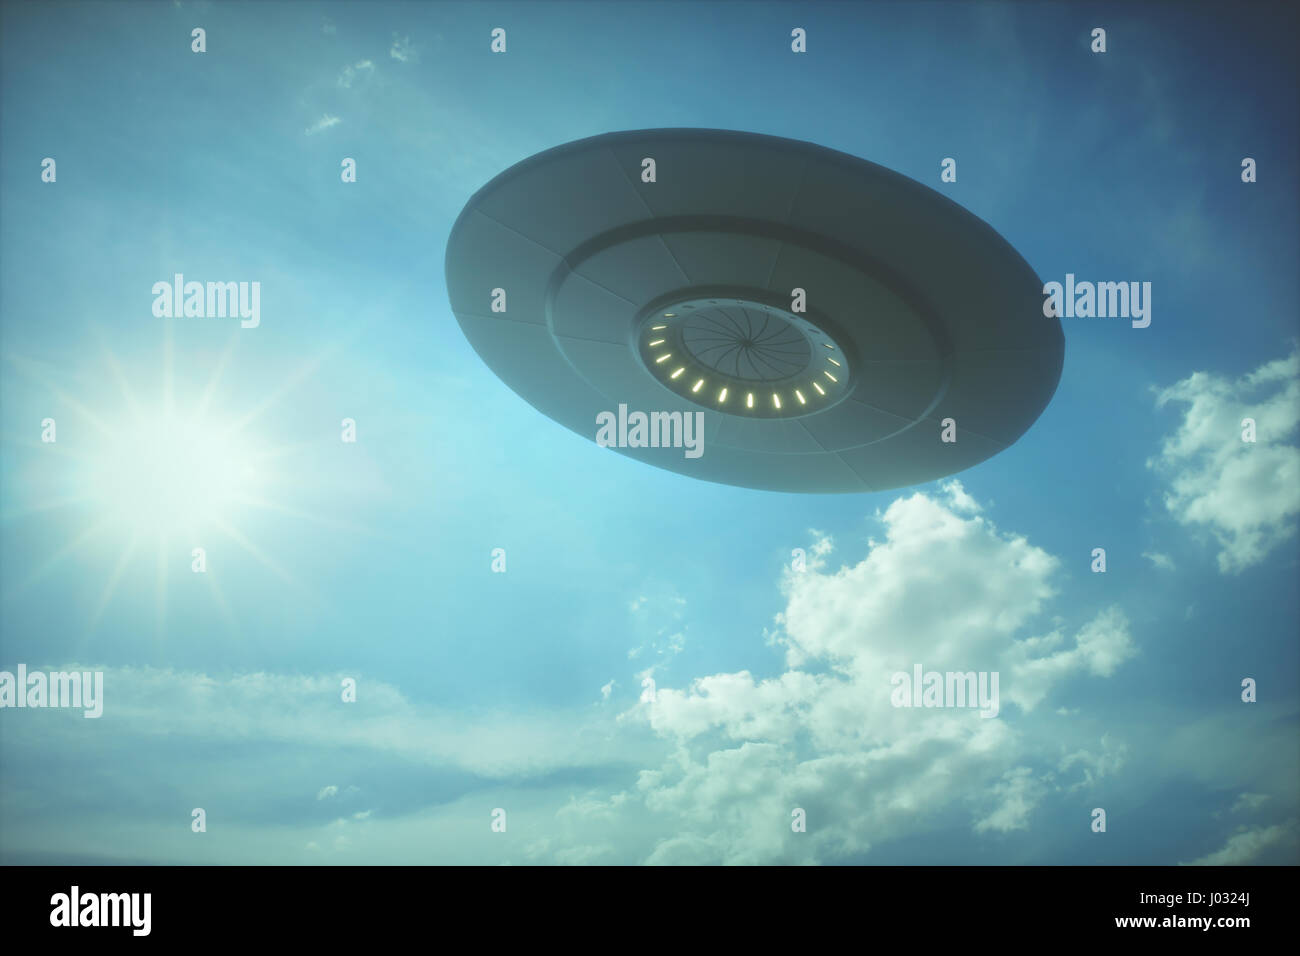 3D illustration with photography. Alien spaceship under the sun. - Stock Image